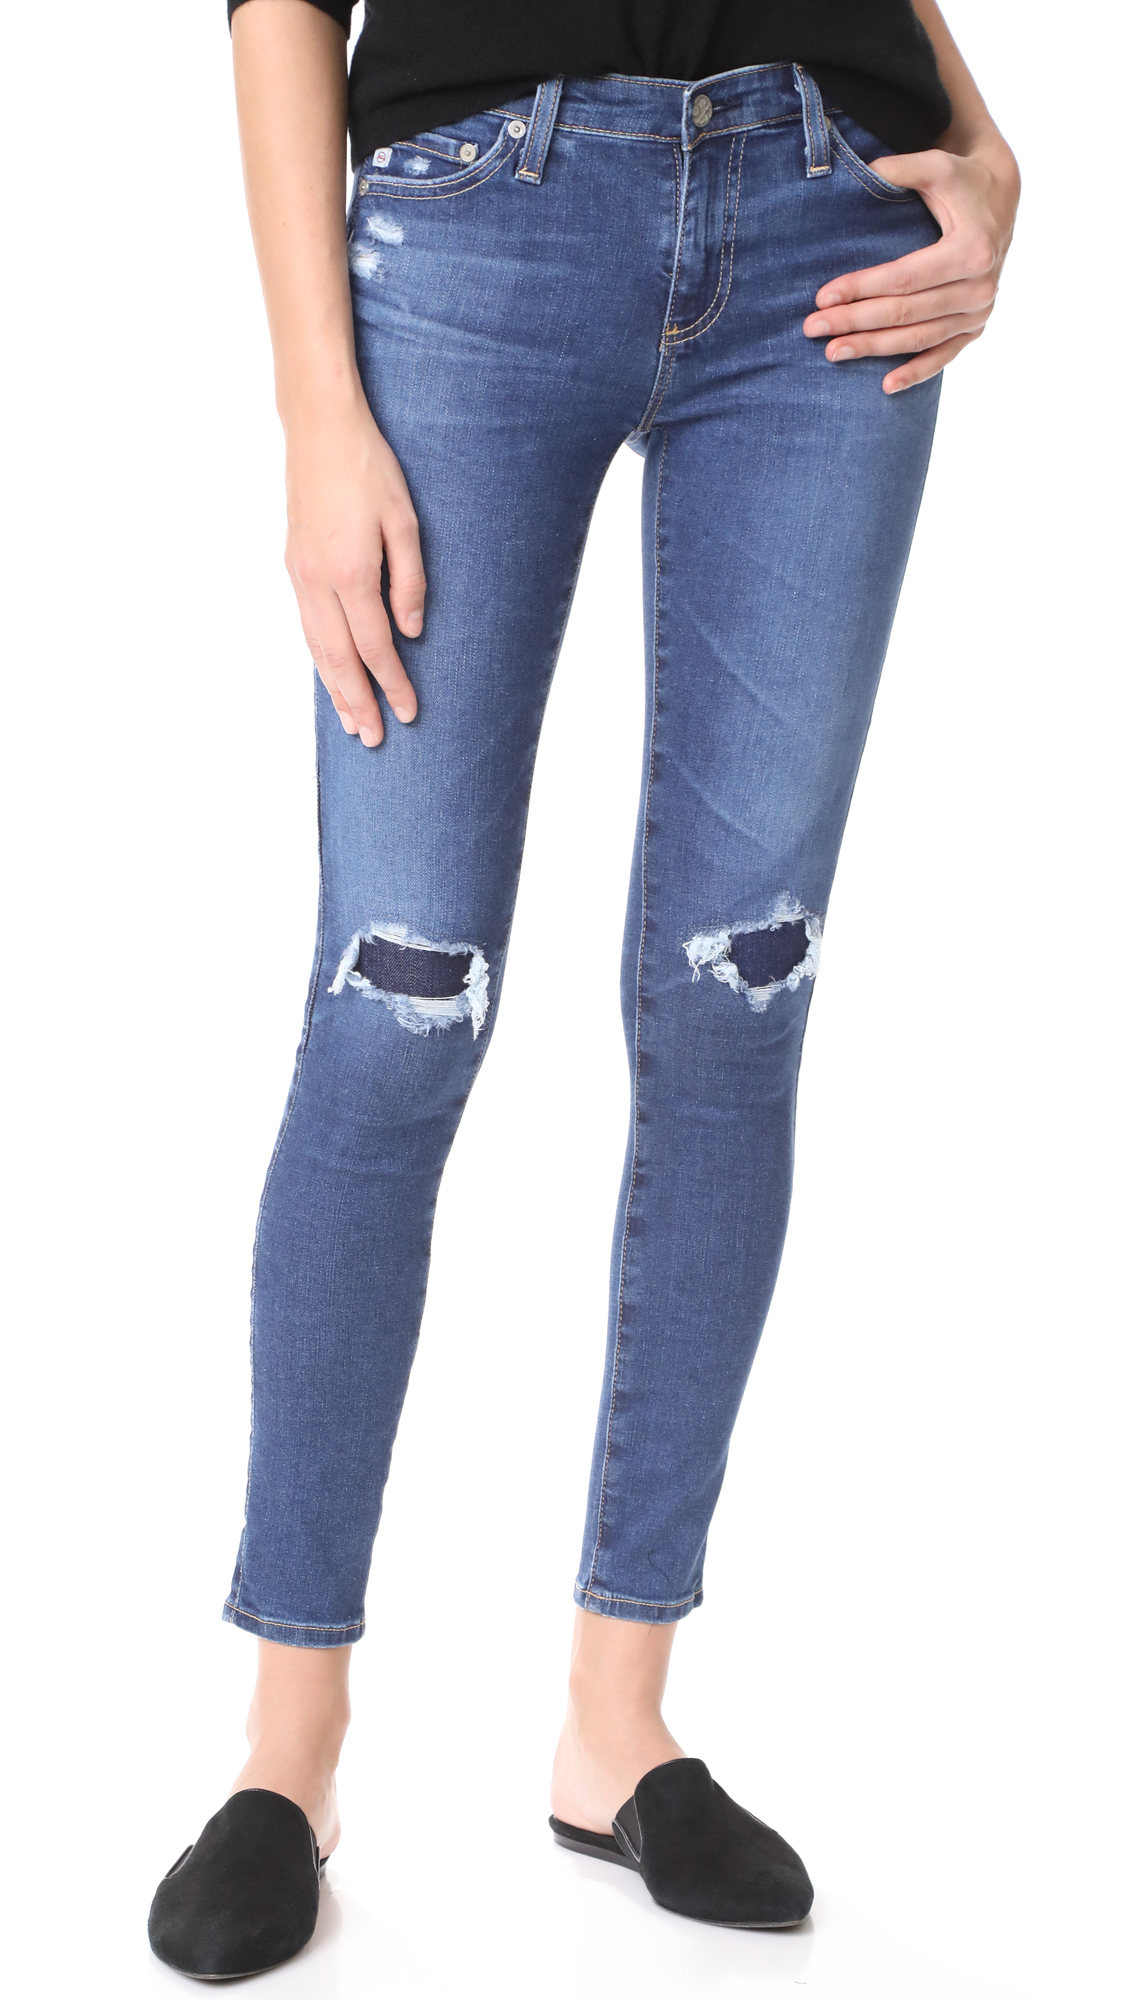 AG The Legging Ankle Jeans - 13 Years Dawn Mended